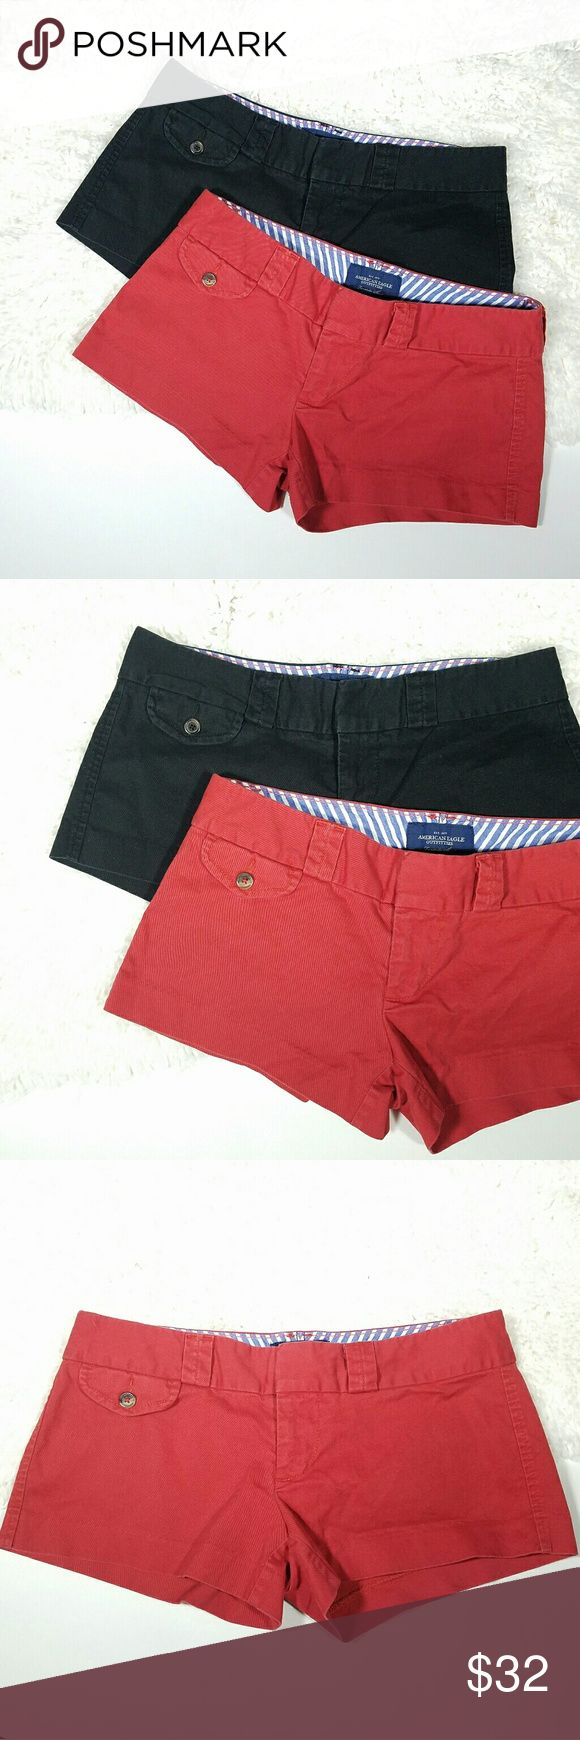 """American Eagle Favorite Shorts Khakis Bundle Bundle of 2 American Eagle Favorite Shorts. Size 0. Soft and comfy, Khakis in black and red. Some stretch for comfort. Retailed for  $39.95 each. Perfect staples for summer!  🌿Both shorts are Size 0.  🌿Waist 14.5""""   Rise 6""""   Inch Seam 2.25"""".  🌿Pre-owned condition with signs of fading from usual wash and wear.  🌿REASONABLE OFFERS Welcome. No Trades. American Eagle Outfitters Shorts"""